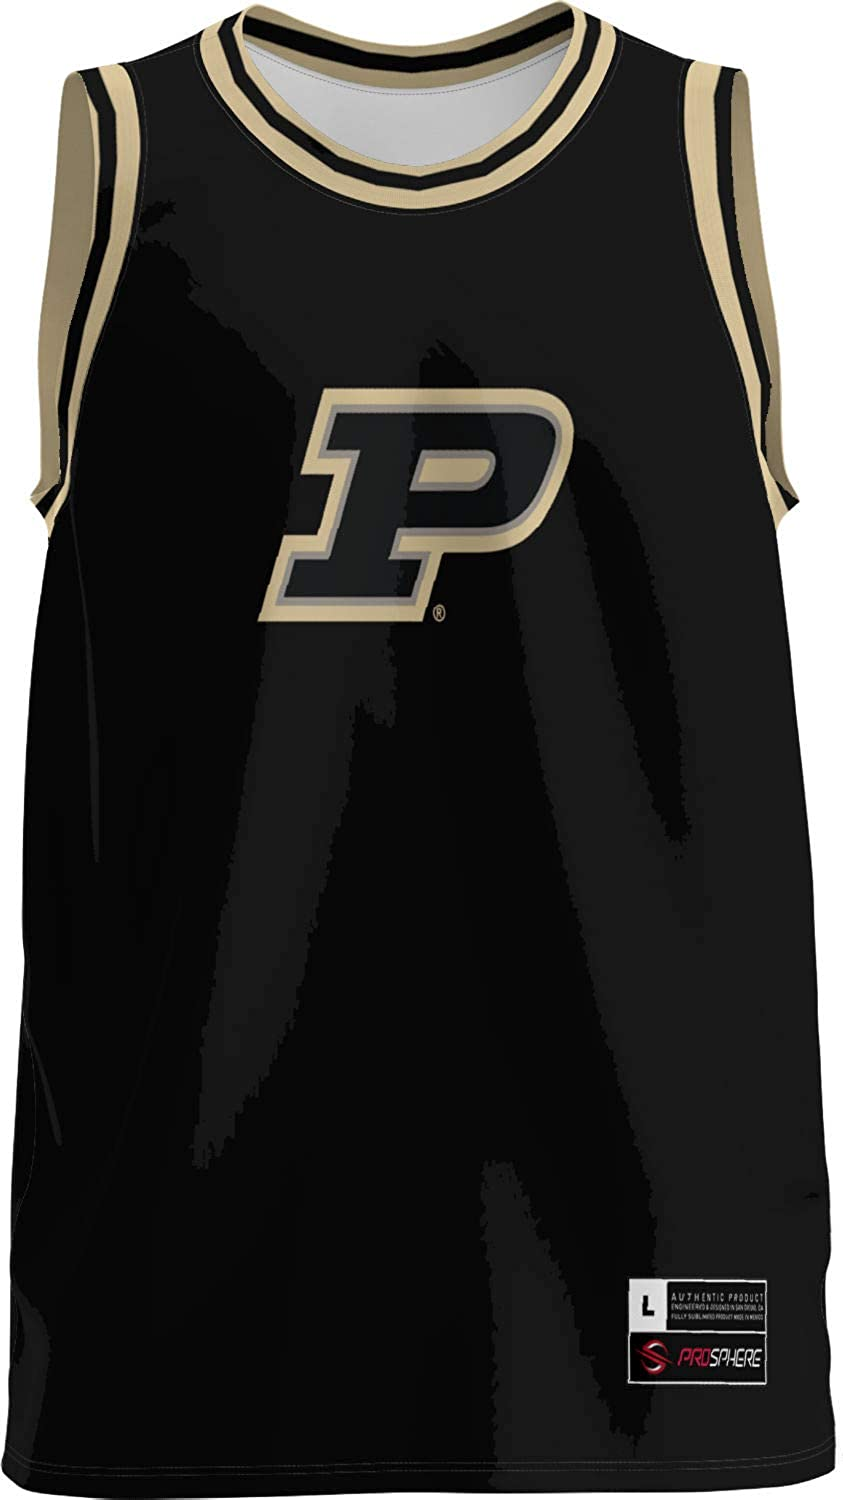 quality design 9f76b 0a30e Amazon.com: ProSphere Purdue University Boys' Basketball ...